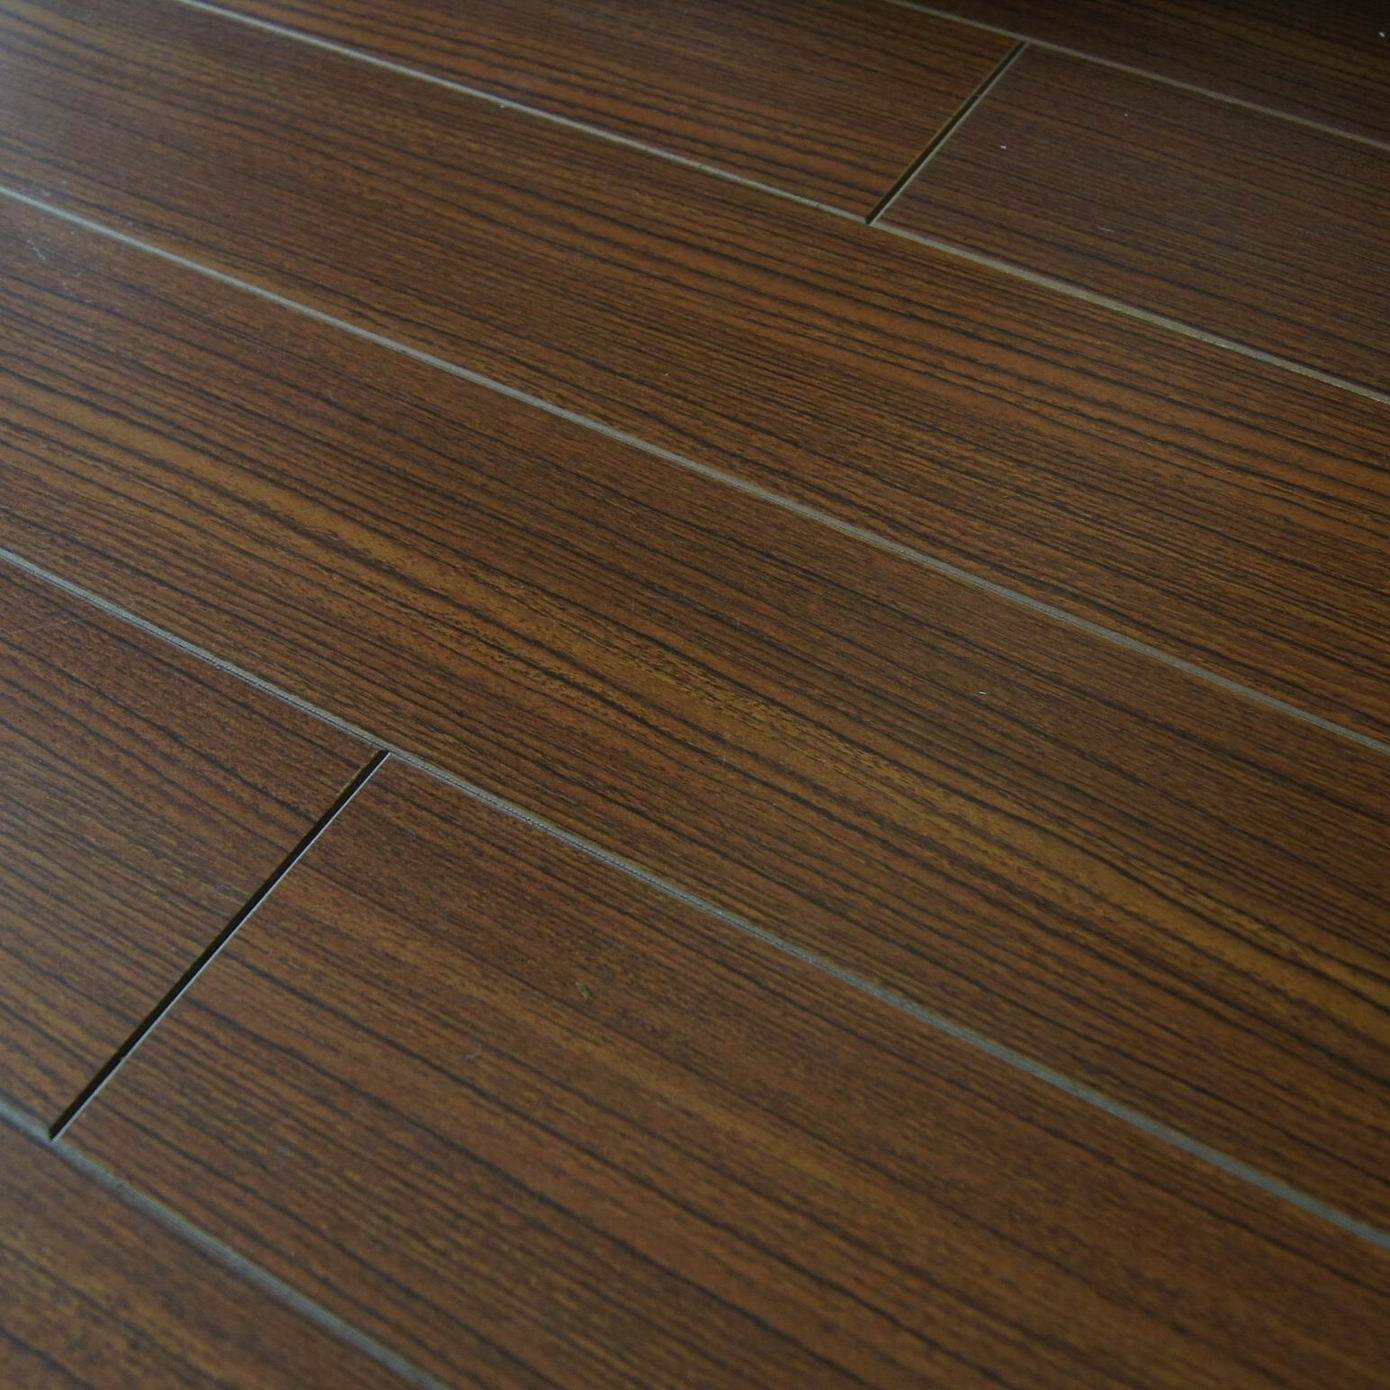 Although It Is Not 100 Wood Base Looks And Feels Very Much Like The Wooden Flooring Offers Unrivalled Comfort